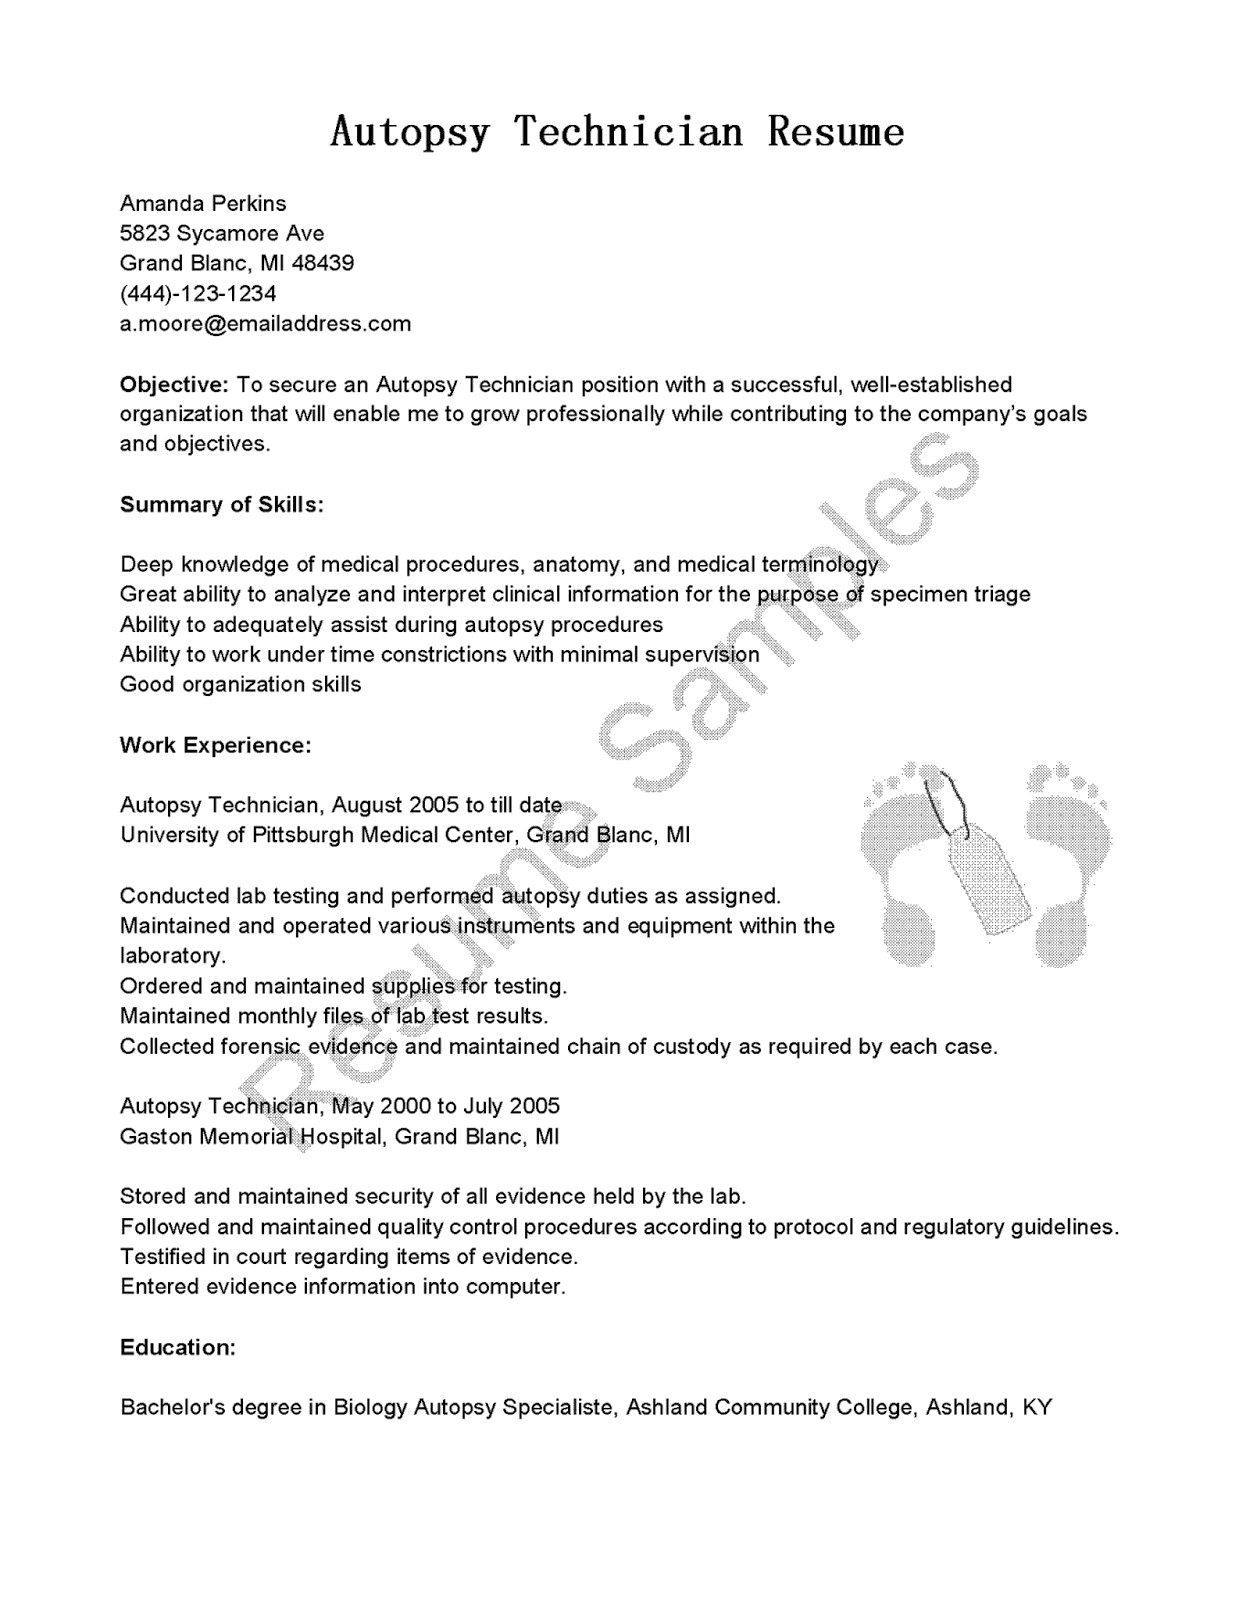 Resume Opening Statement - 37 Design Examples Professional Resumes